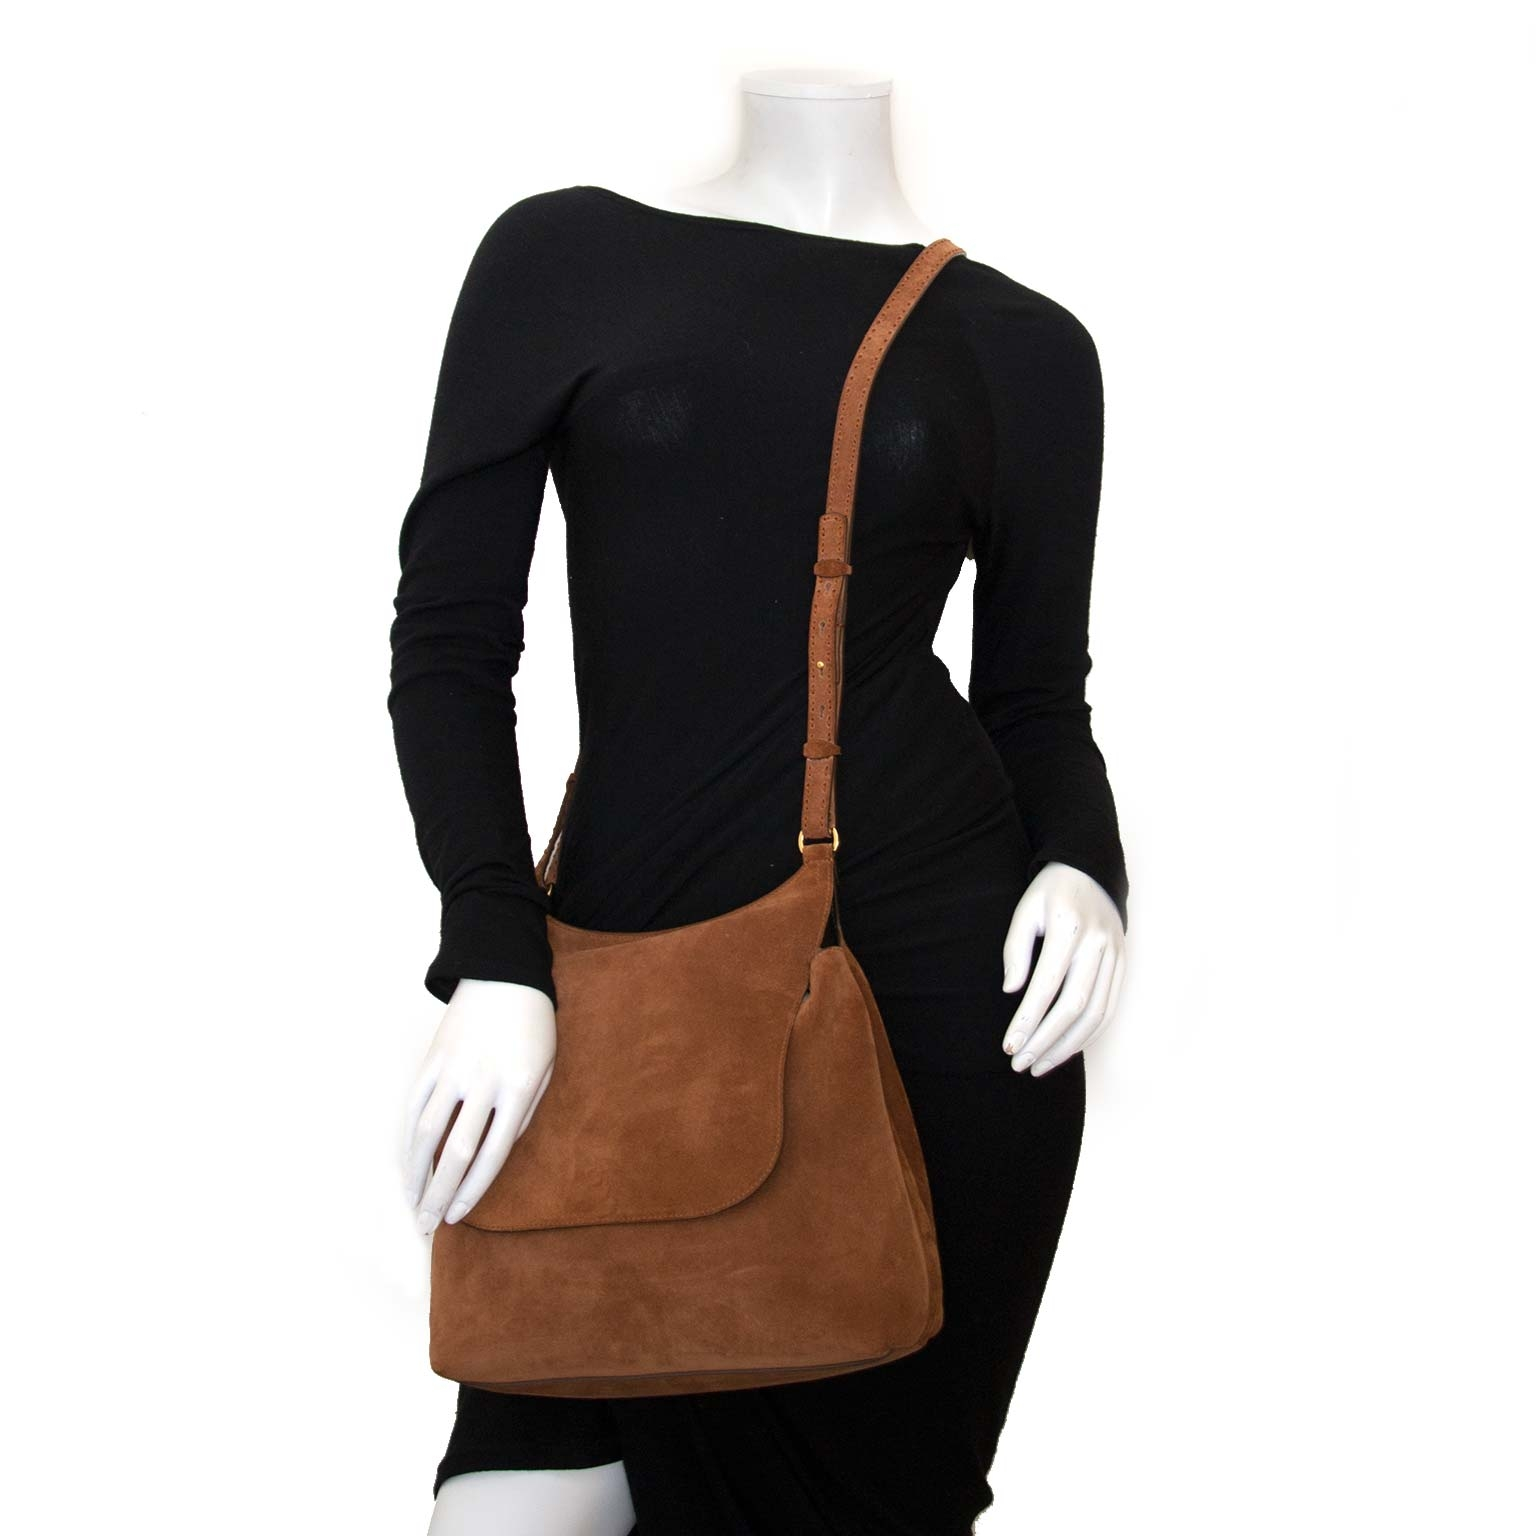 the row sideby suede shoulder bag now for sale at labellov vintage fashion webshop belgium